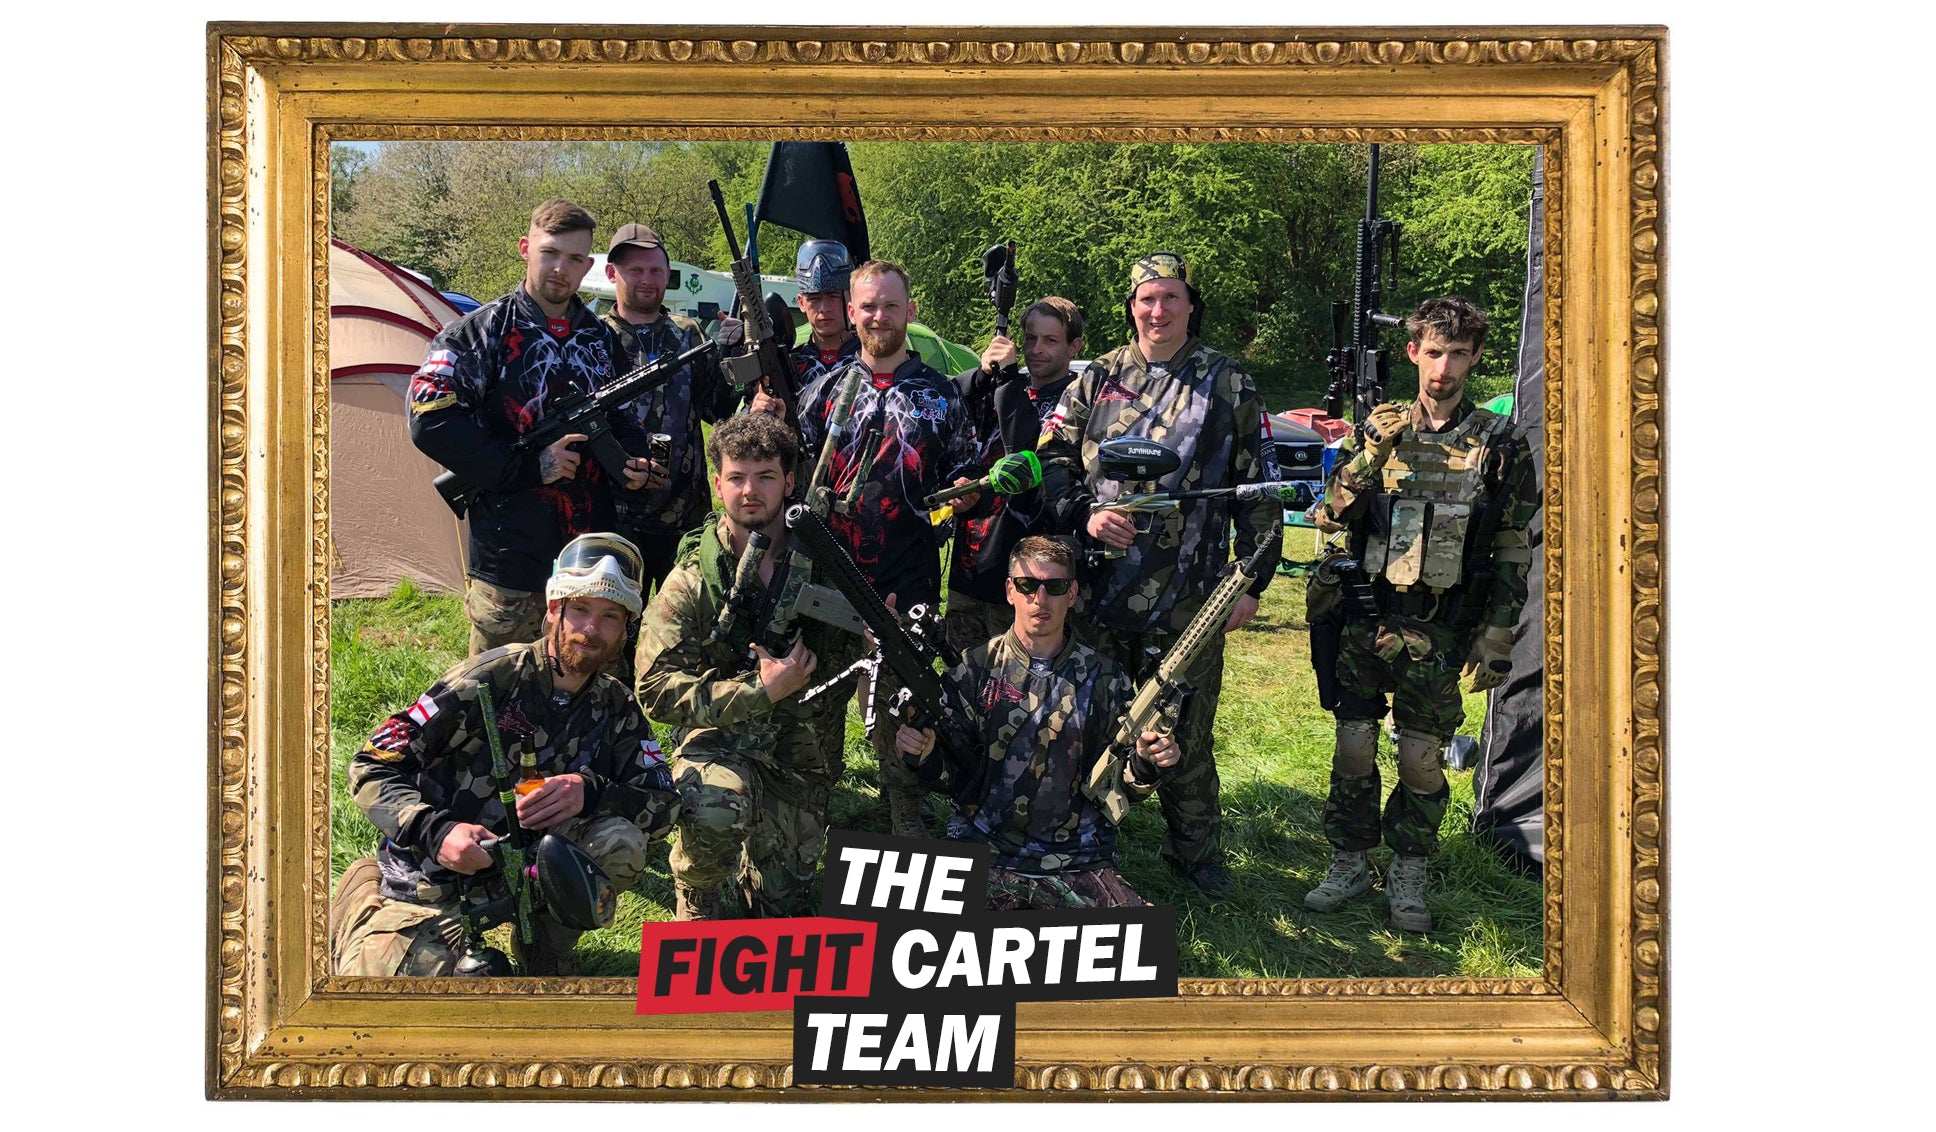 The Fight Cartel Martial Arts Team